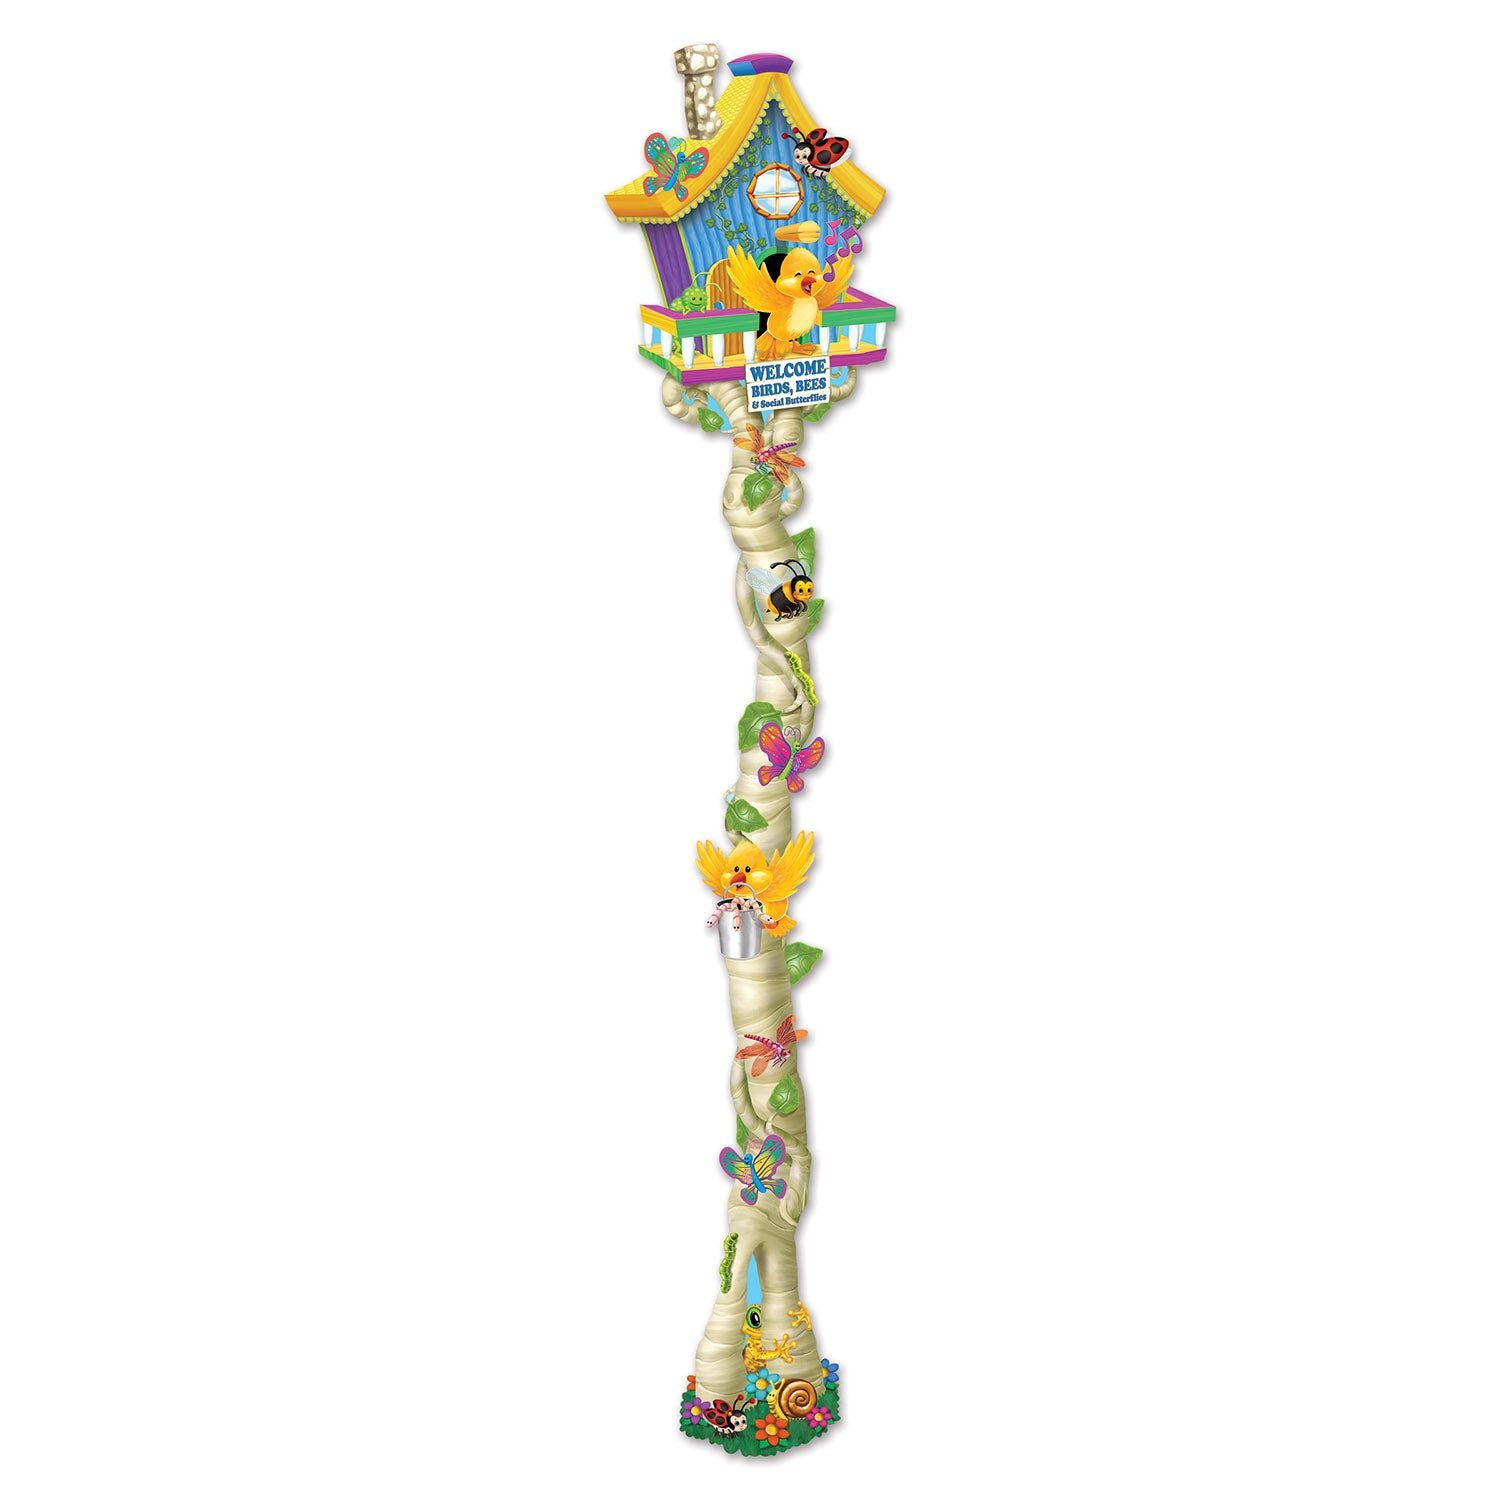 Jointed Spring Birdhouse by Beistle - Spring/Summer Theme Decorations